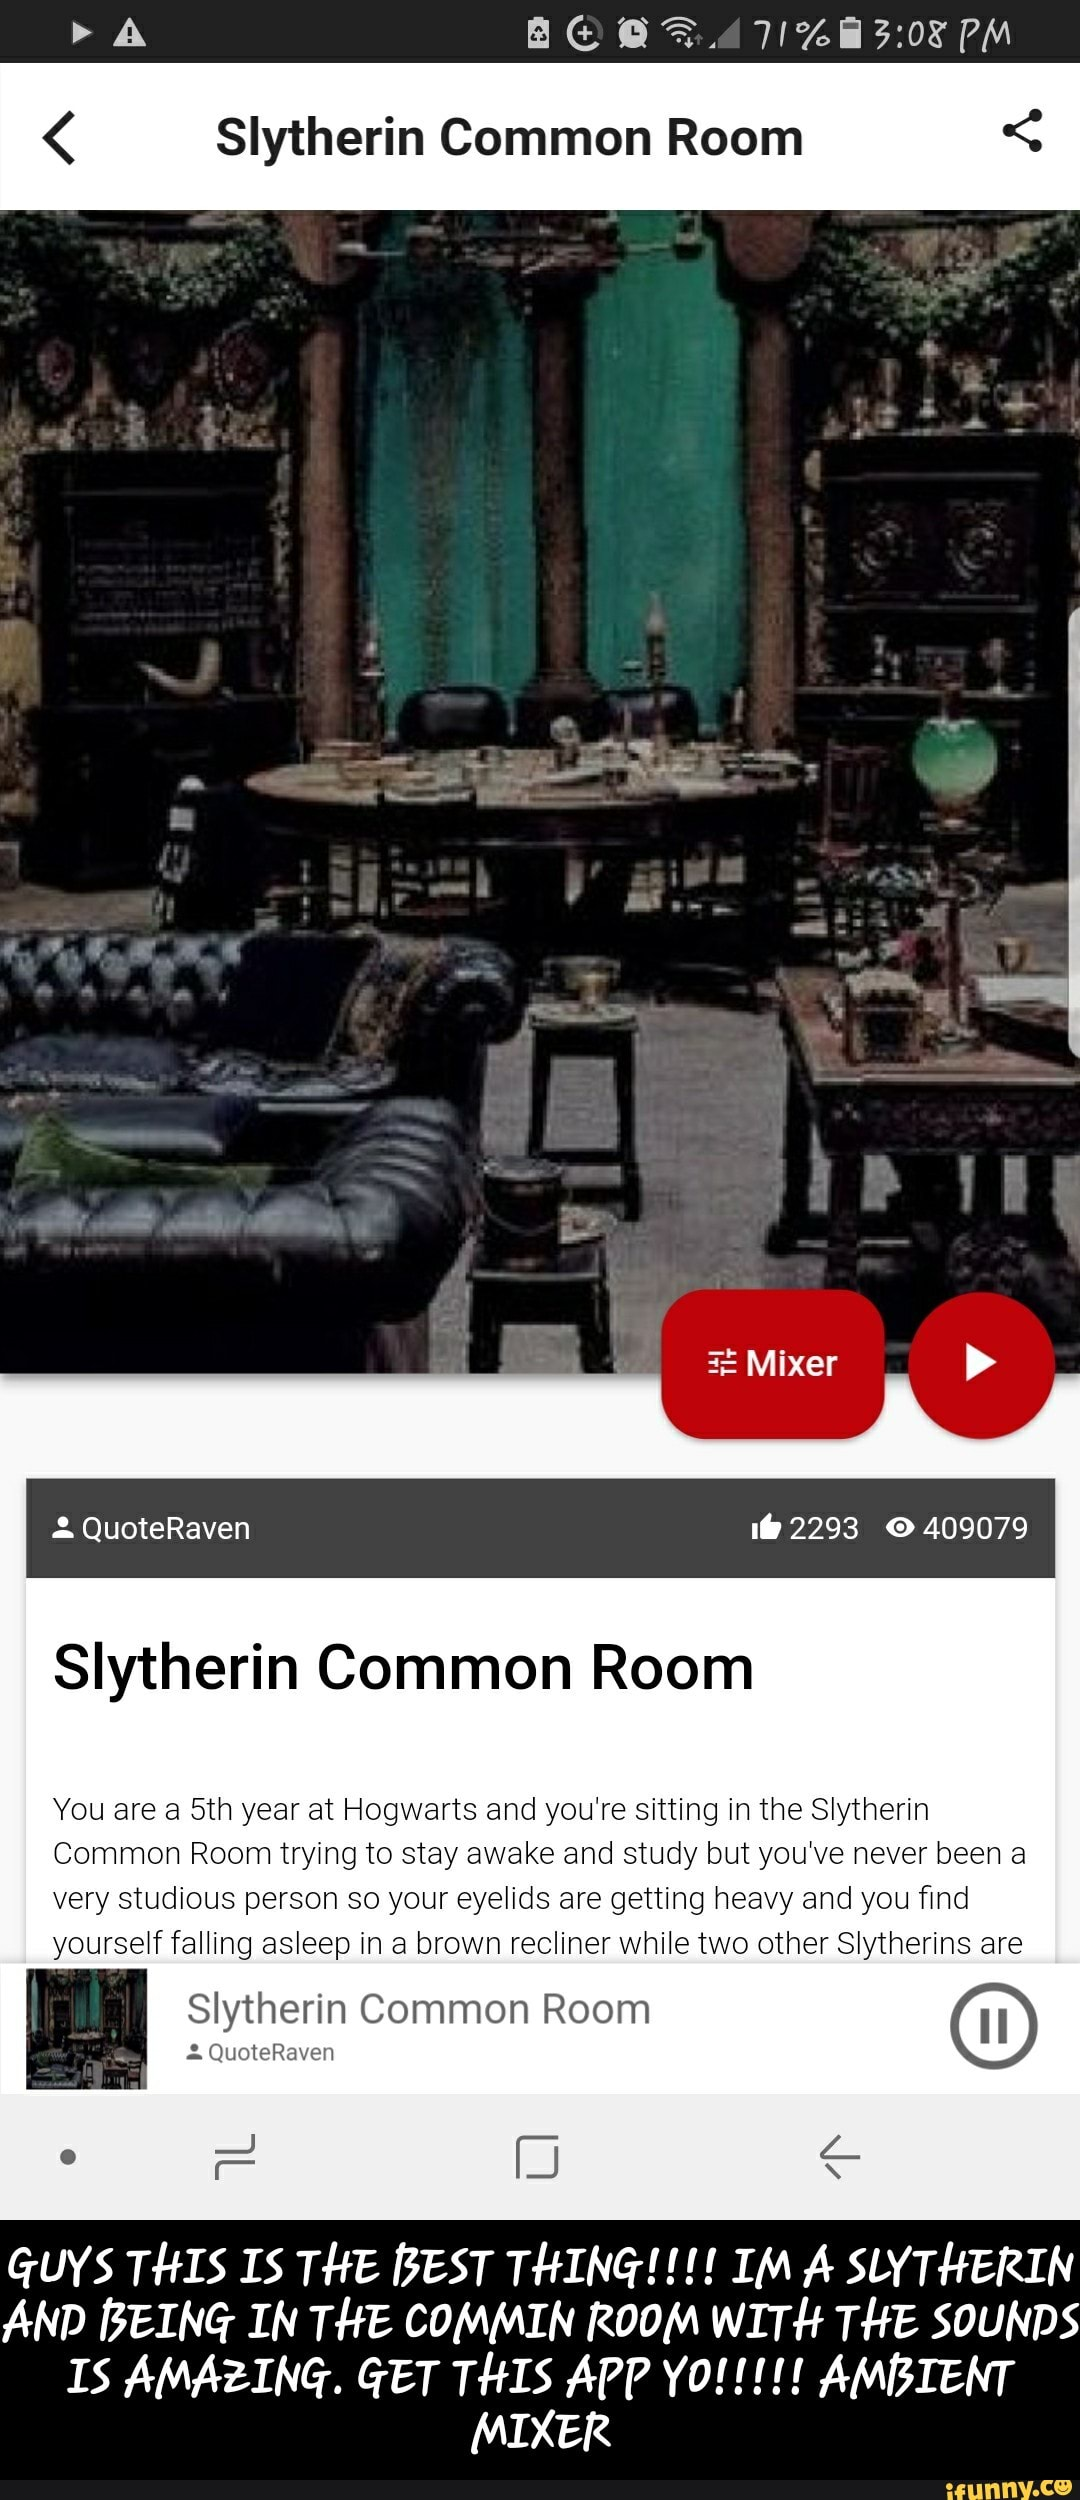 Ambient Mixer siytherin common room < siytherin common room you are a 5m